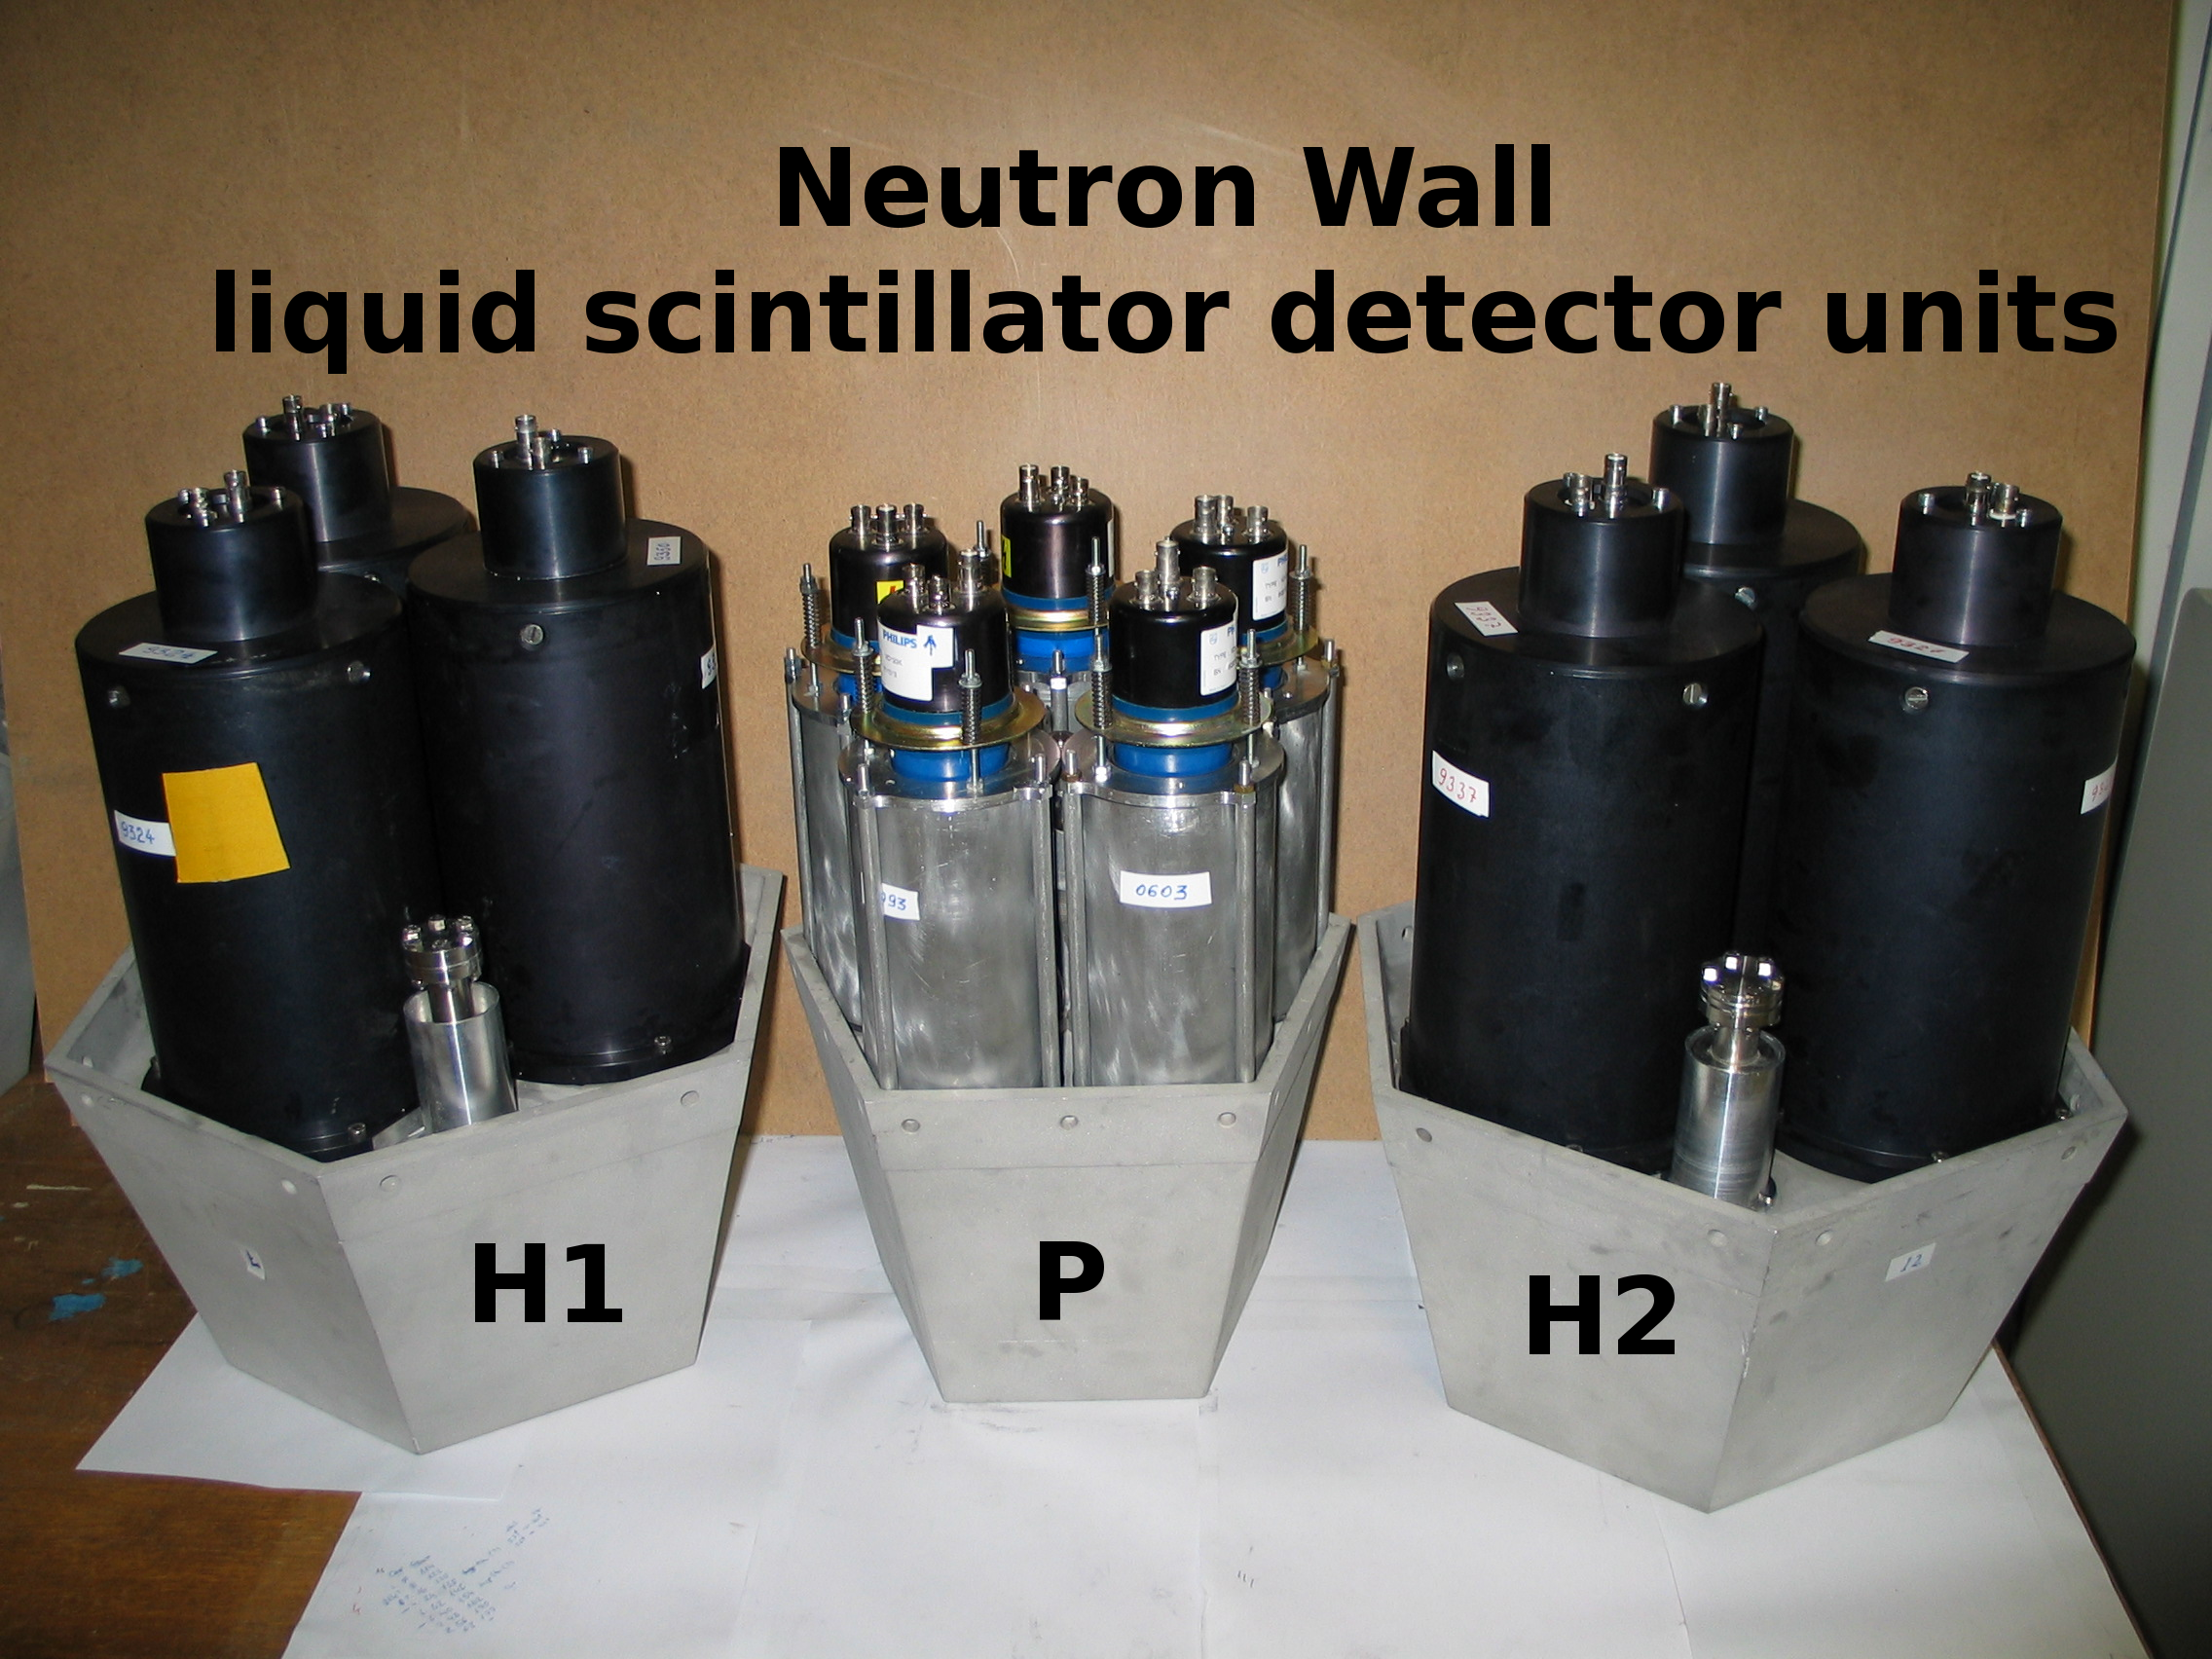 Neutron Wall  detectors